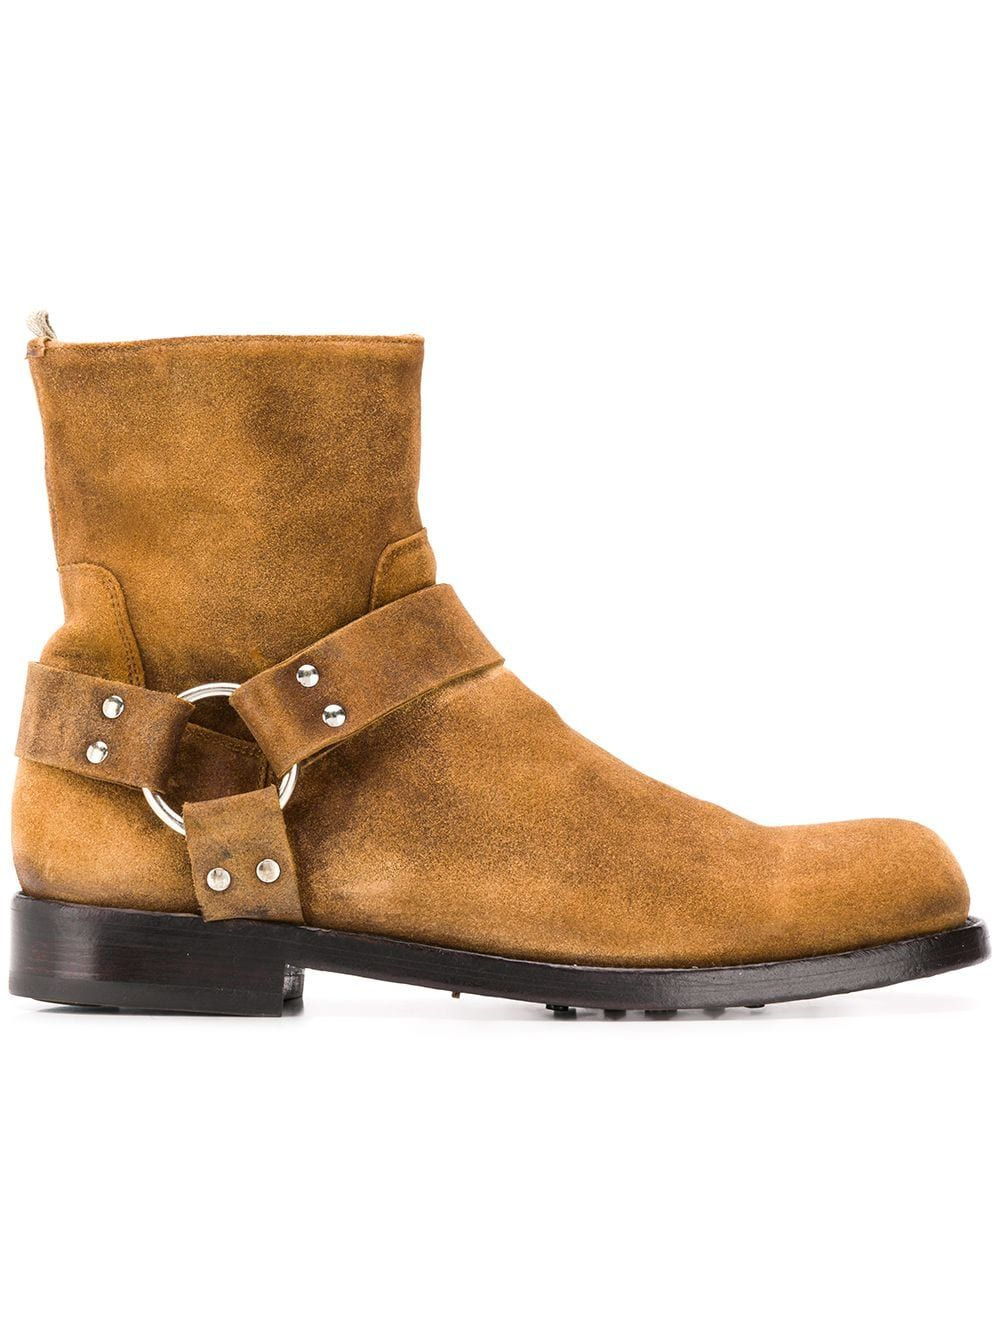 3349b06a5307b OFFICINE CREATIVE OFFICINE CREATIVE WESTERN BOOTS - BROWN.  #officinecreative #shoes